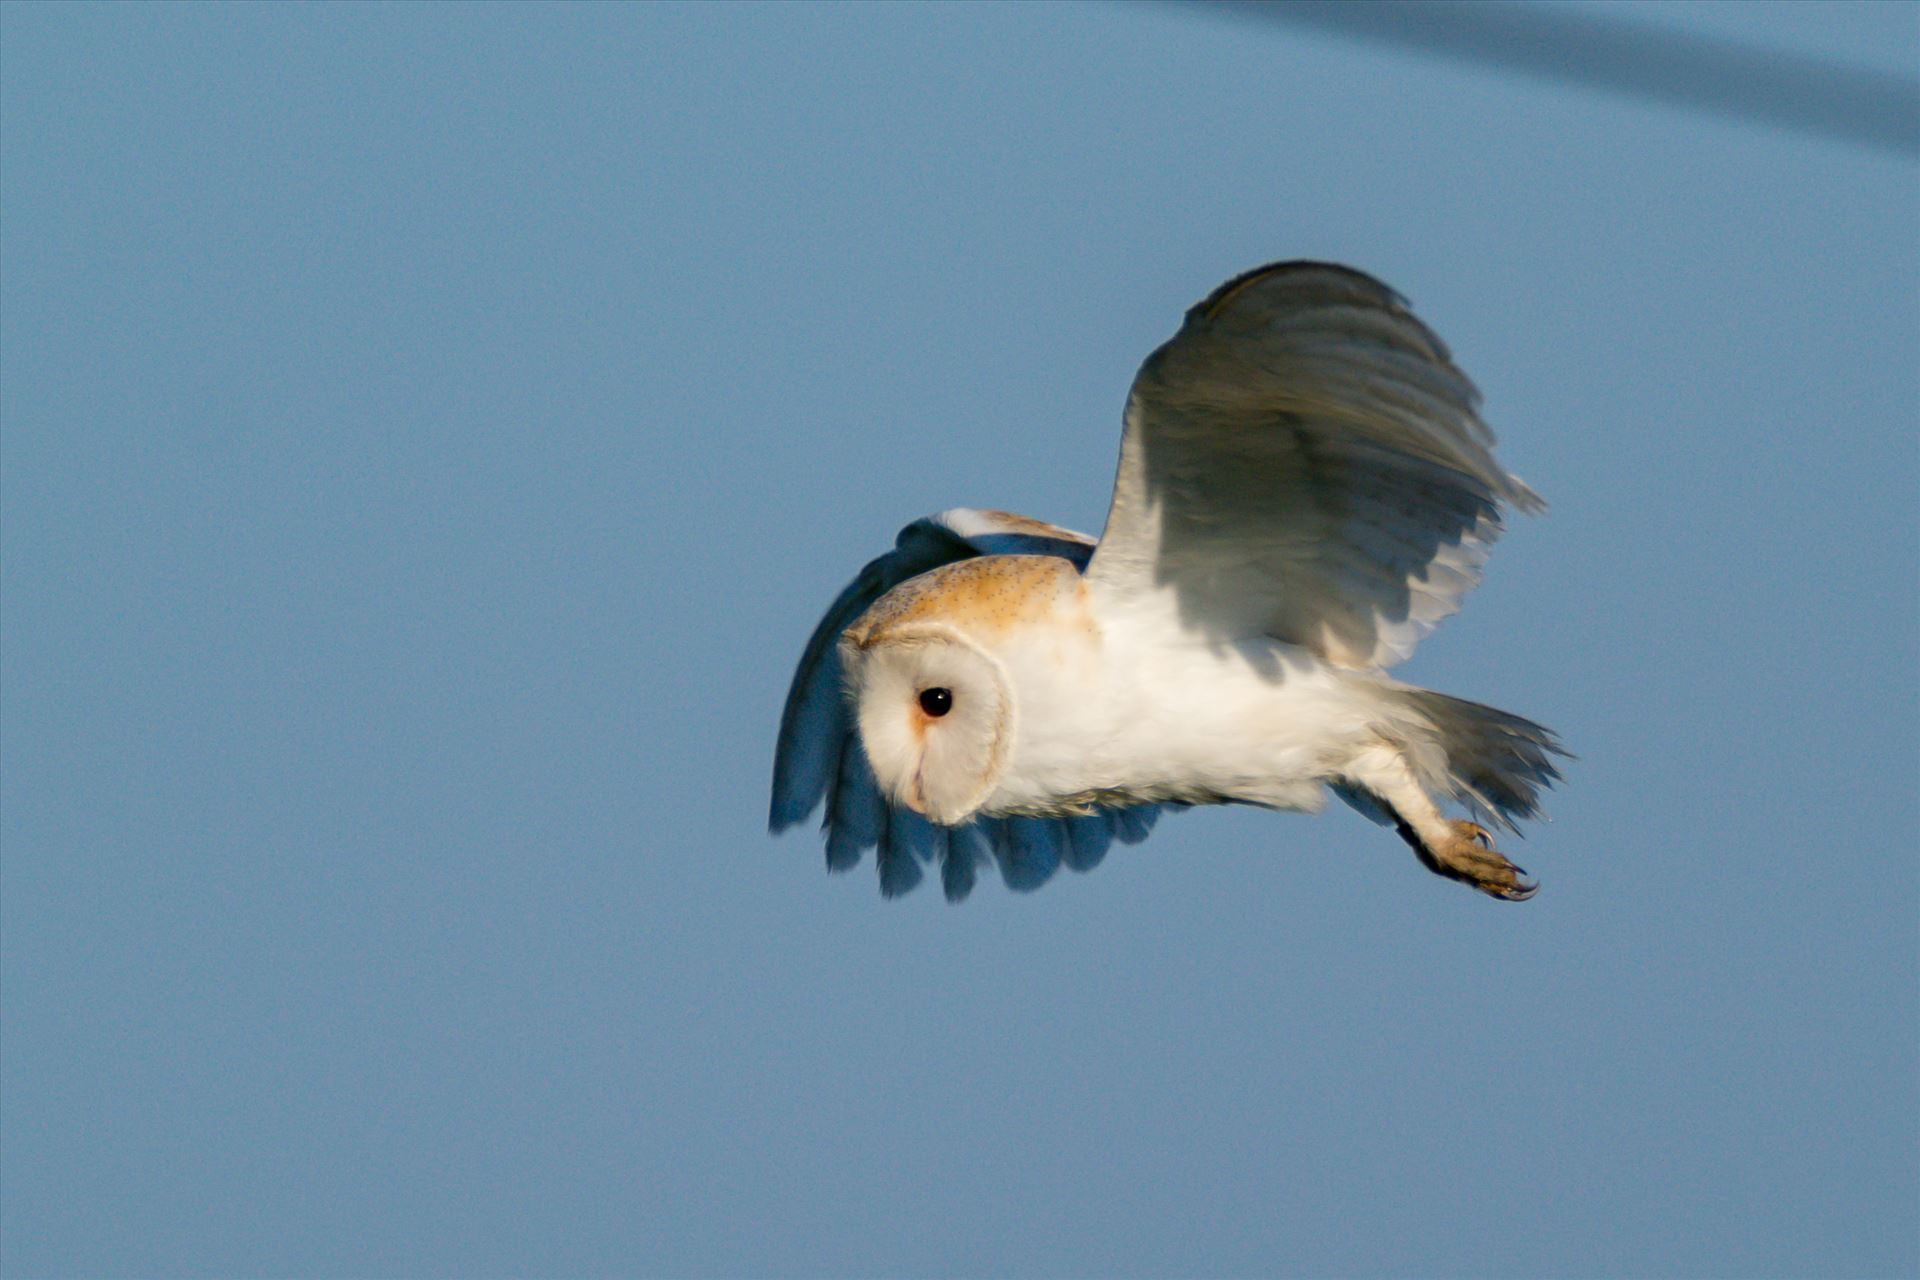 Barn Owl on the hunt 03 - A Barn Owl on the hunt for its breakfast by AJ Stoves Photography